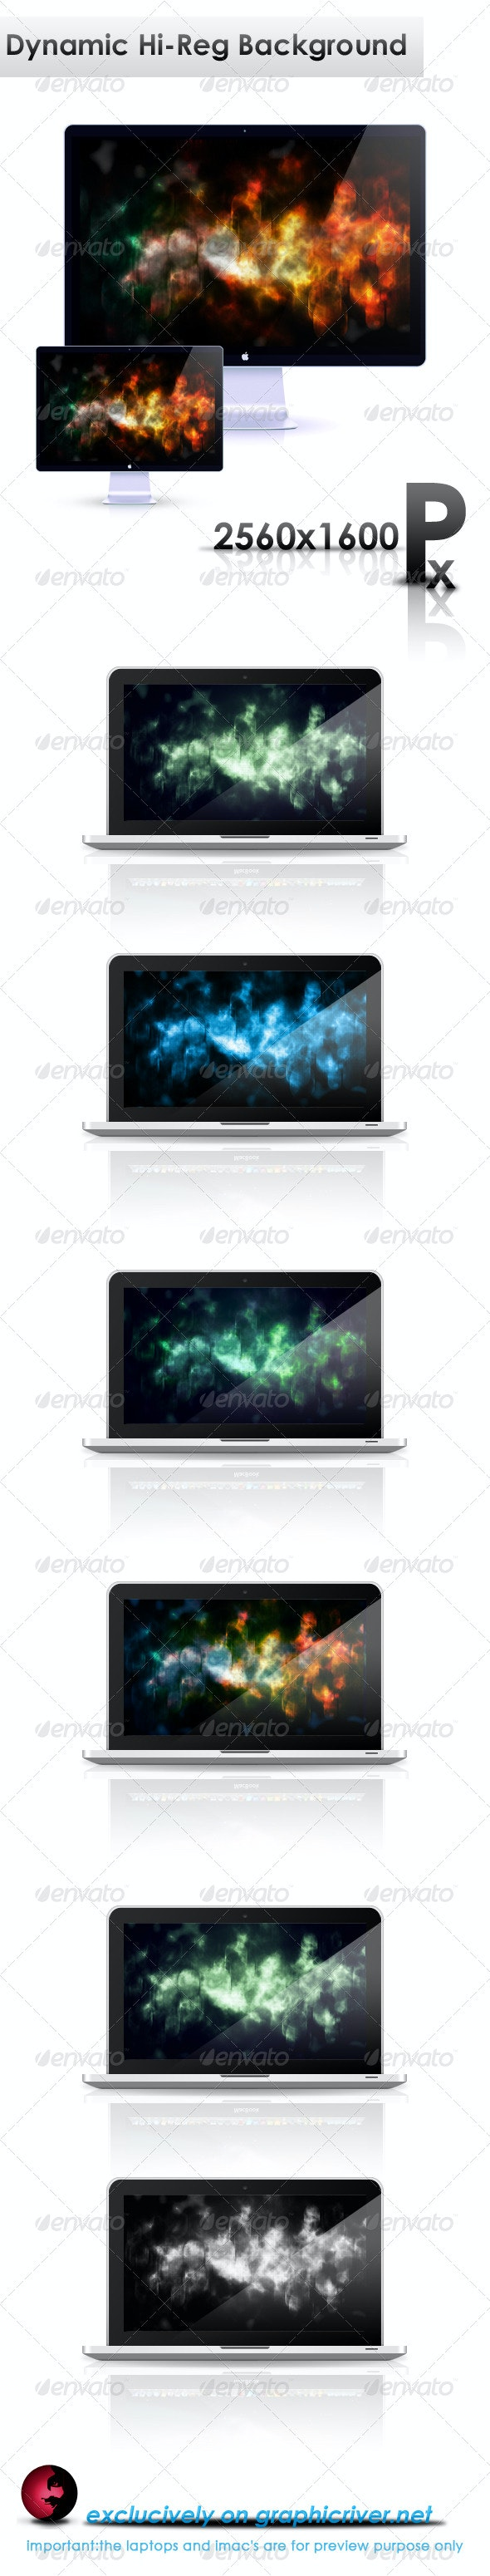 Dynamic Background - Backgrounds Graphics